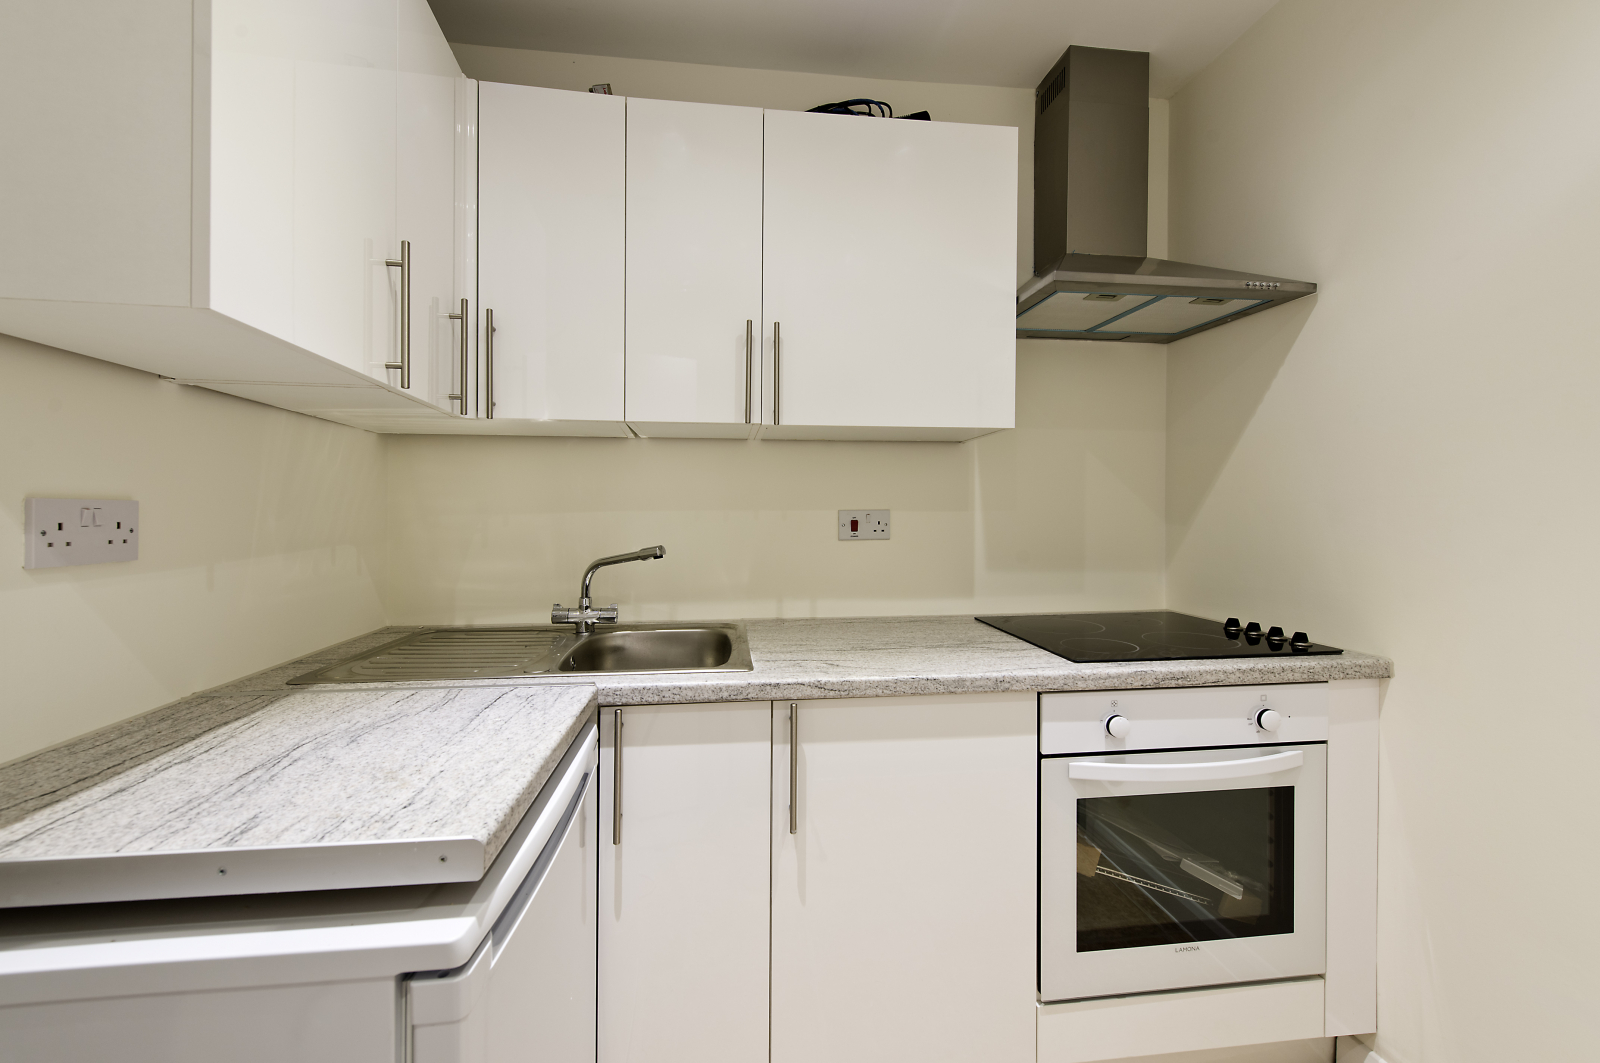 1 bed house share to rent in Charleville road, West Kensington, London  - Property Image 9